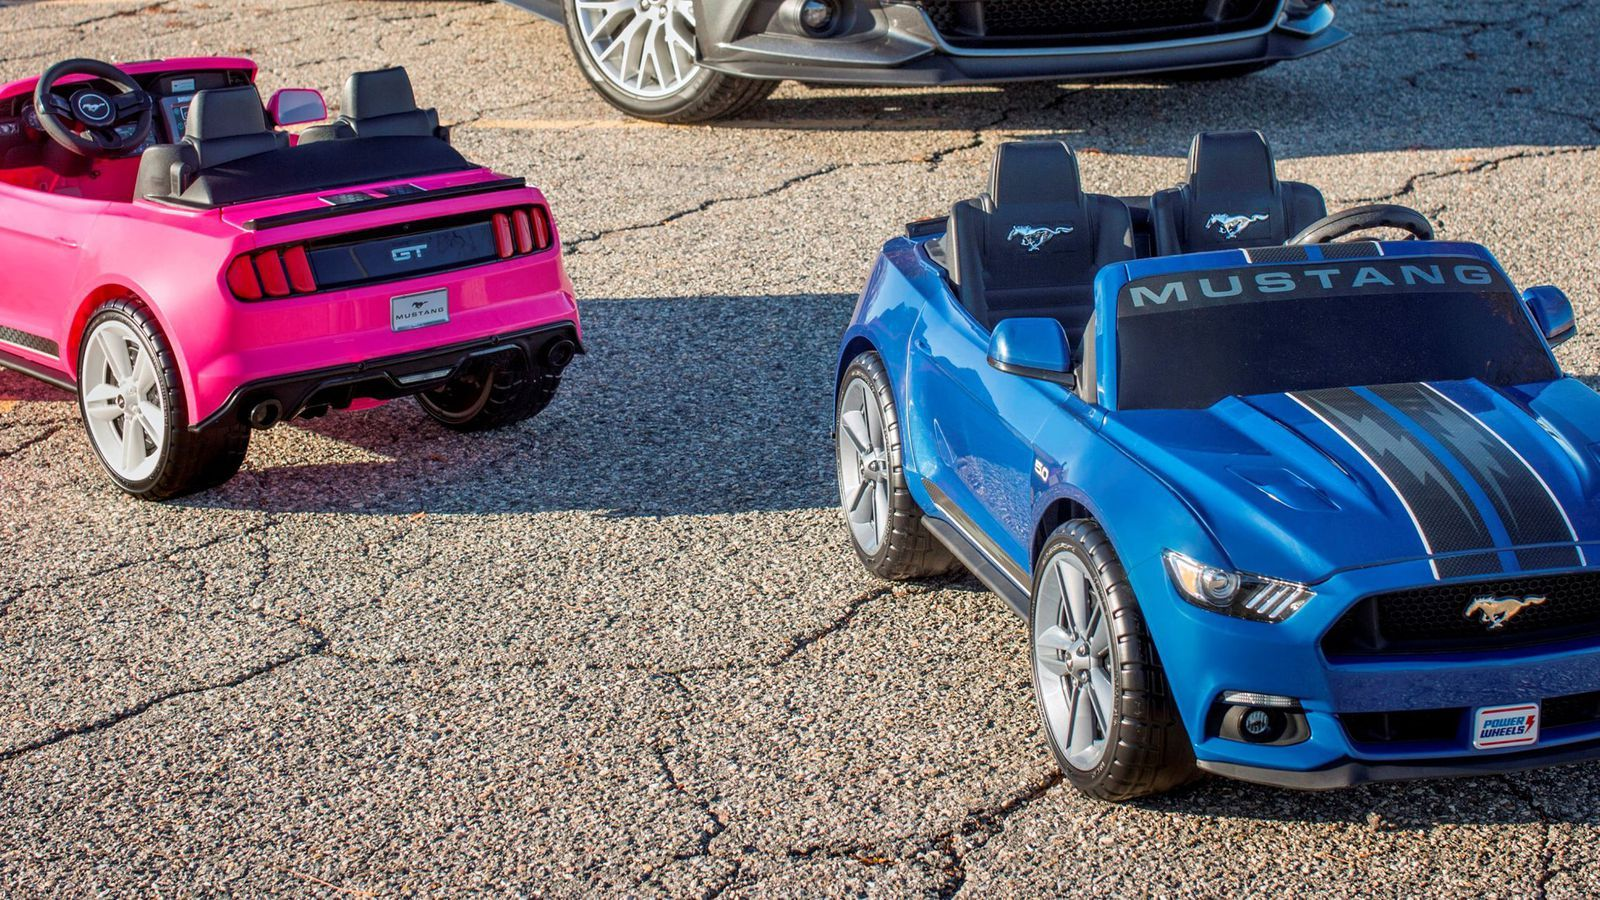 Jeep toys for kids  Fordus new Mustang Power Wheels comes with freaking traction control